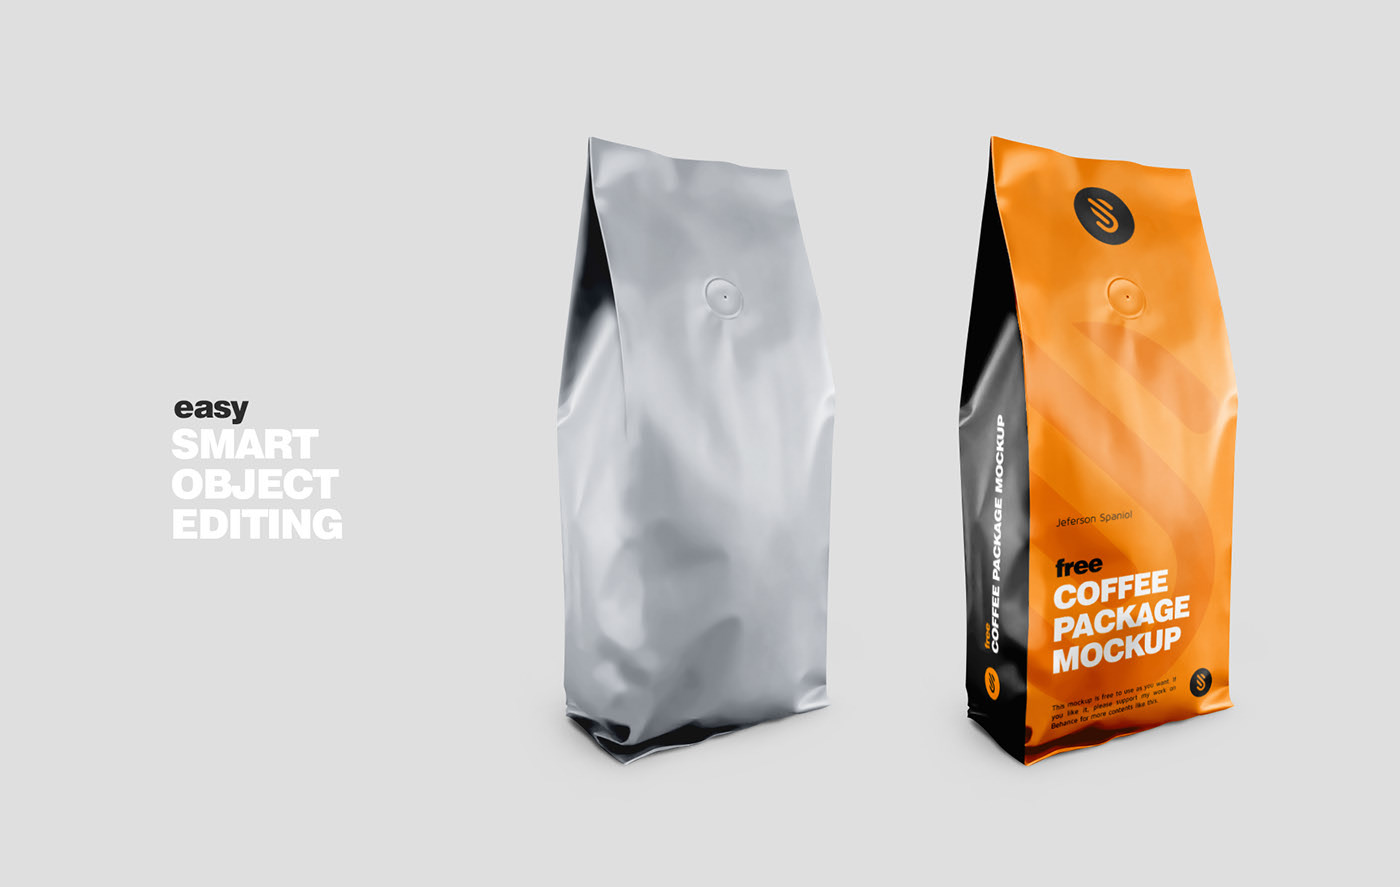 Aluminium foil pouch mockups, coffee paper pouch, food and milk pouch packaging mockups. Izdrzljivost Vila Dzamija Foil Pouch Plastic Bag Packaging Mockup Psd Experiencedcopywriting Com